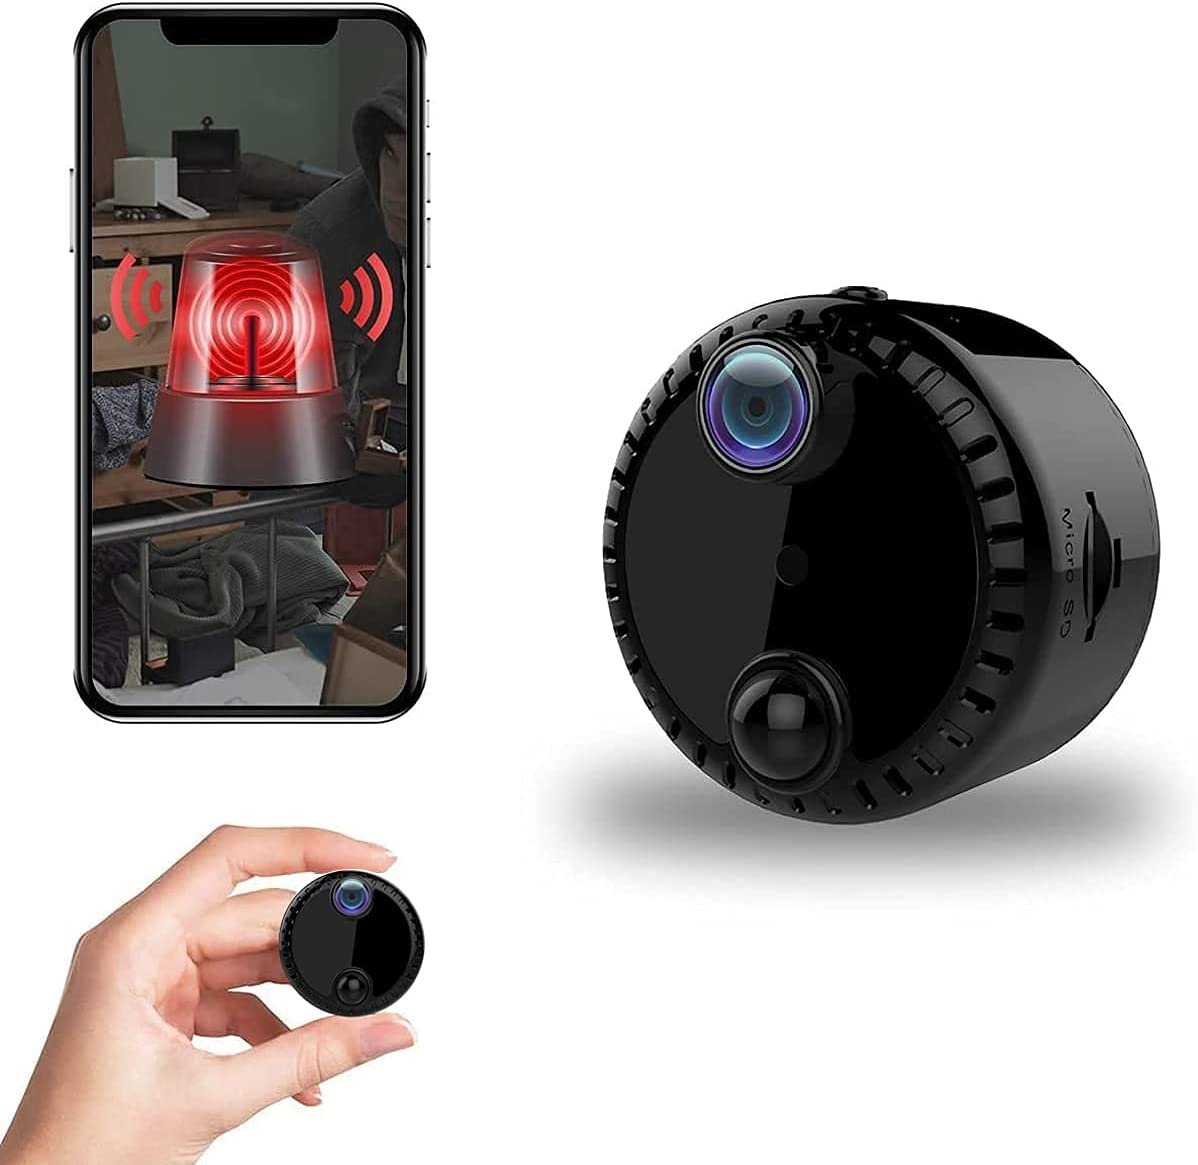 Hidden Camera WiFi Spy Camera 1080P Mini Camera 30 Days Standby Wireless Nanny Cam with Night Vision PIR Motion Detection Portable Security Surveillance Camera Suitable for Indoor and Outdoor